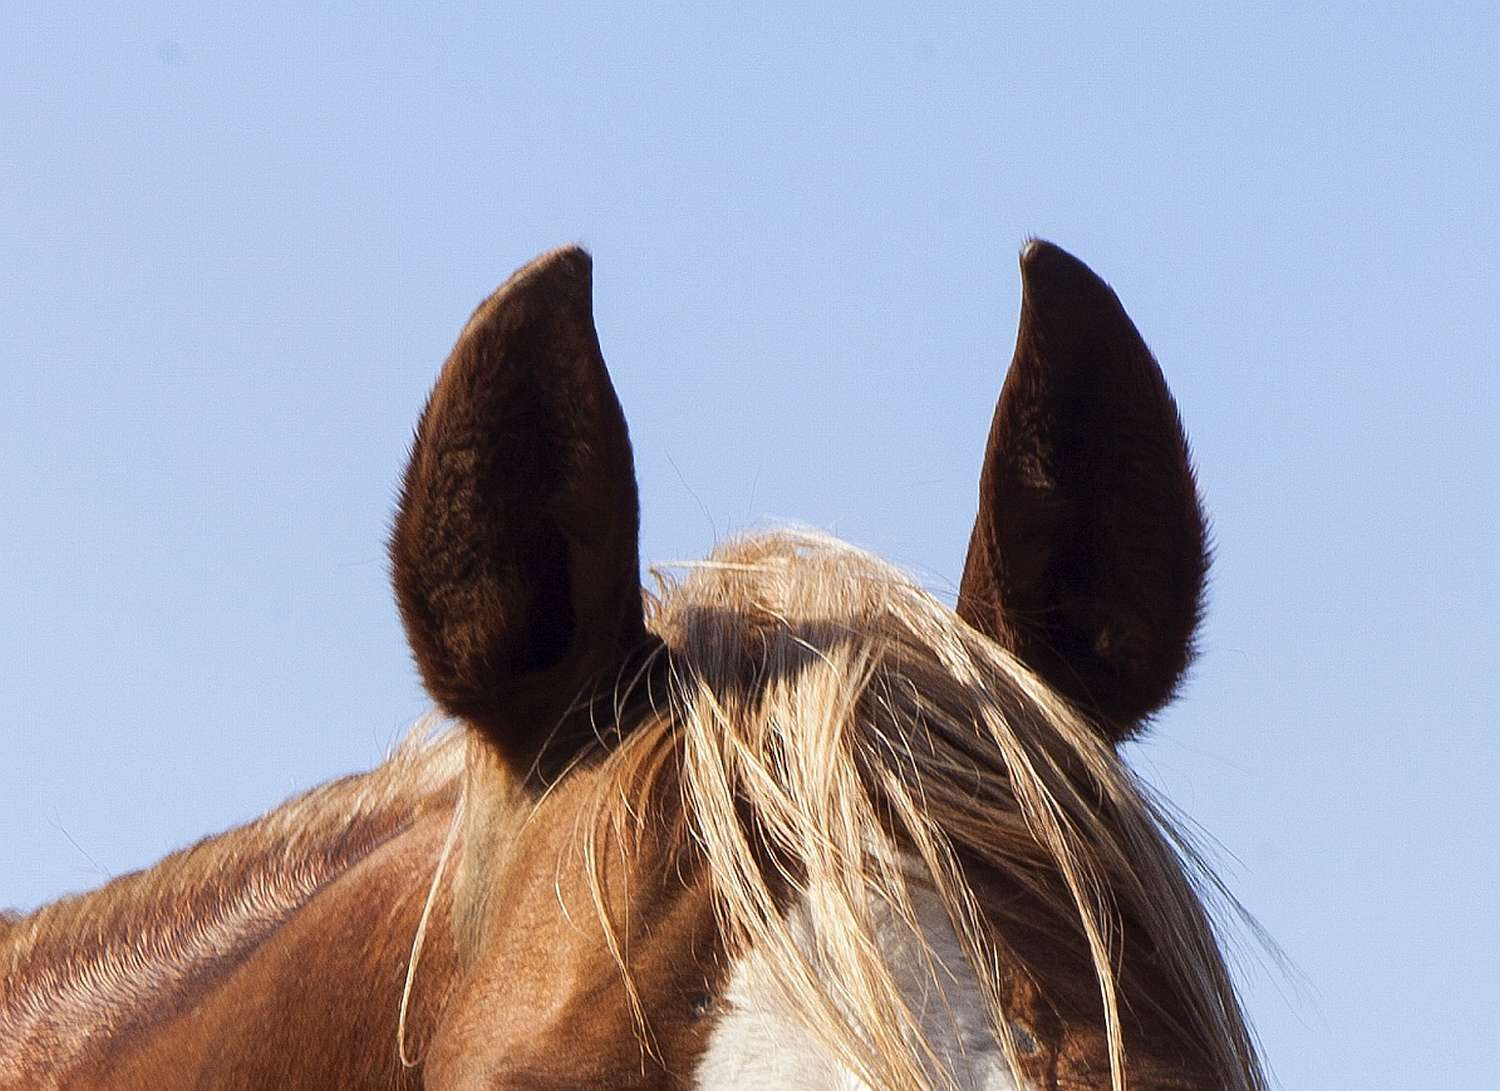 closeup of poll and ears of a horse